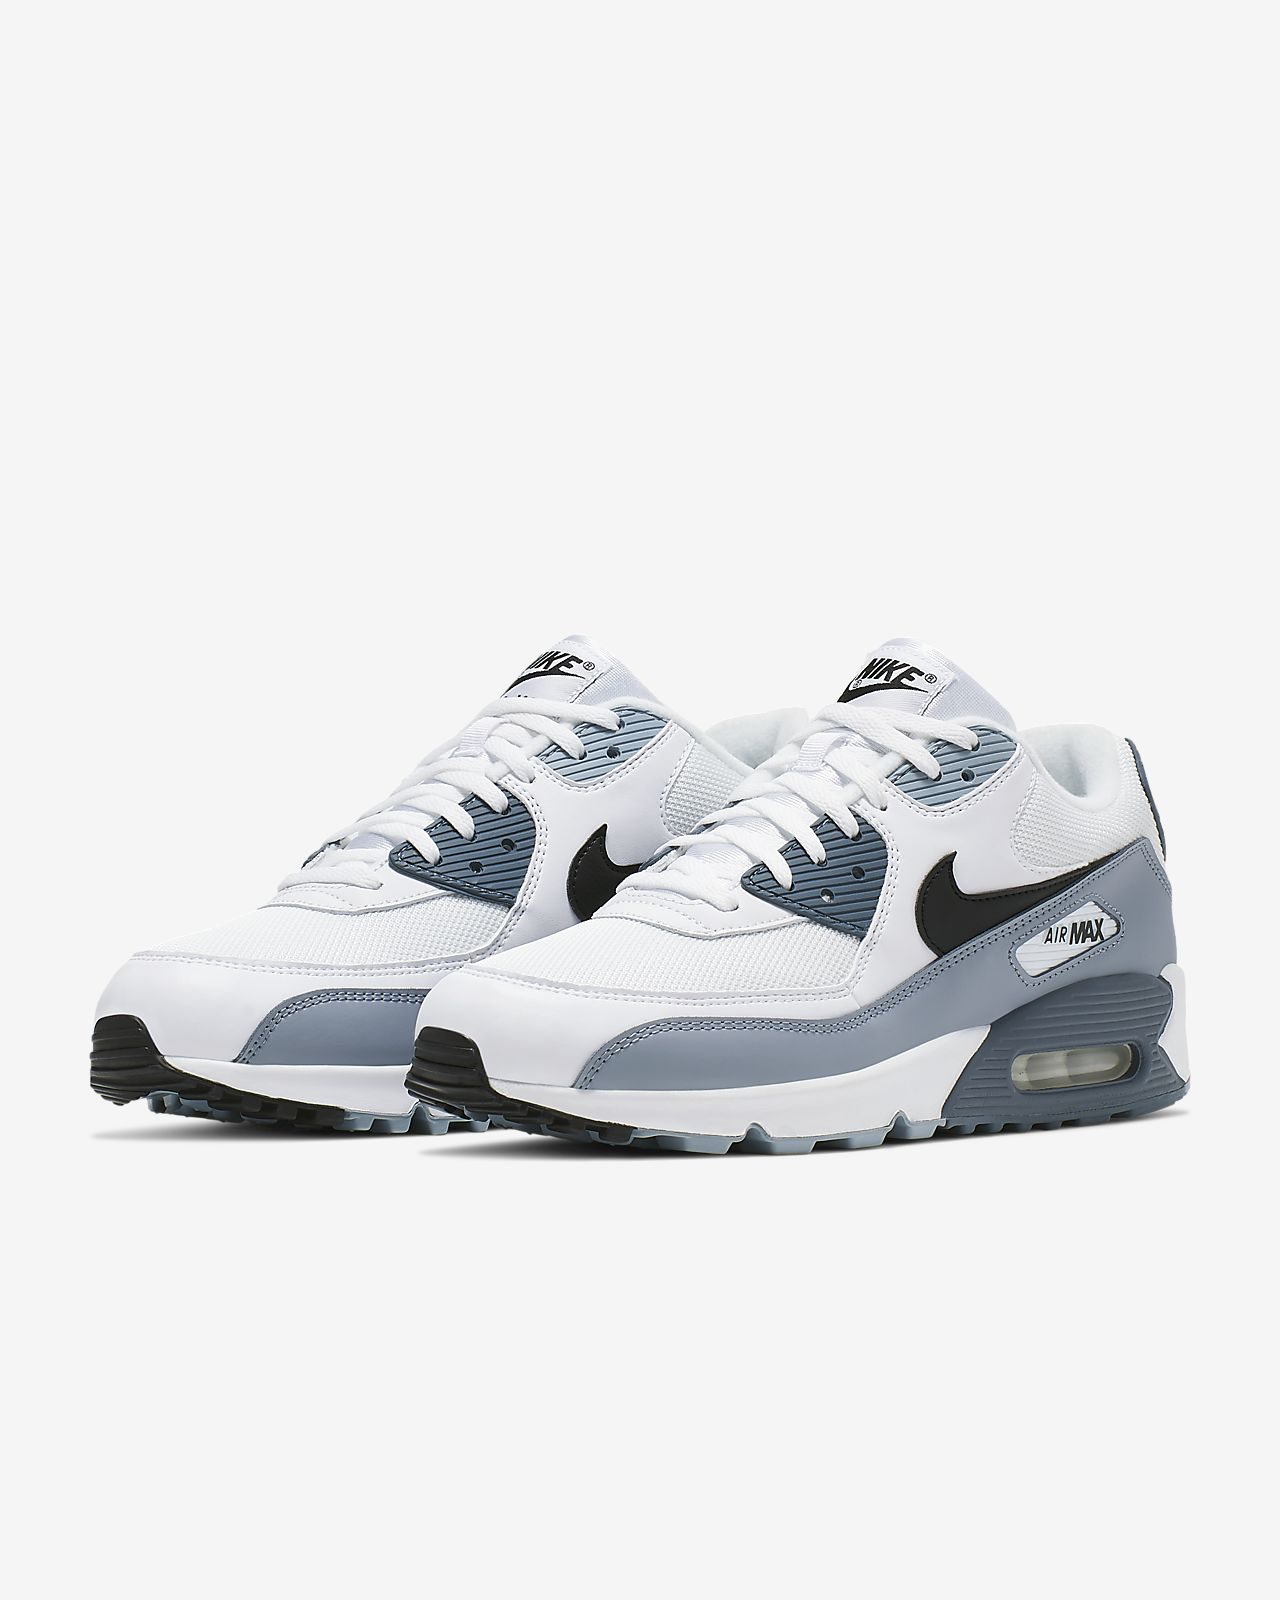 separation shoes d5bee d1b8f ... Nike Air Max 90 Essential Men s Shoe